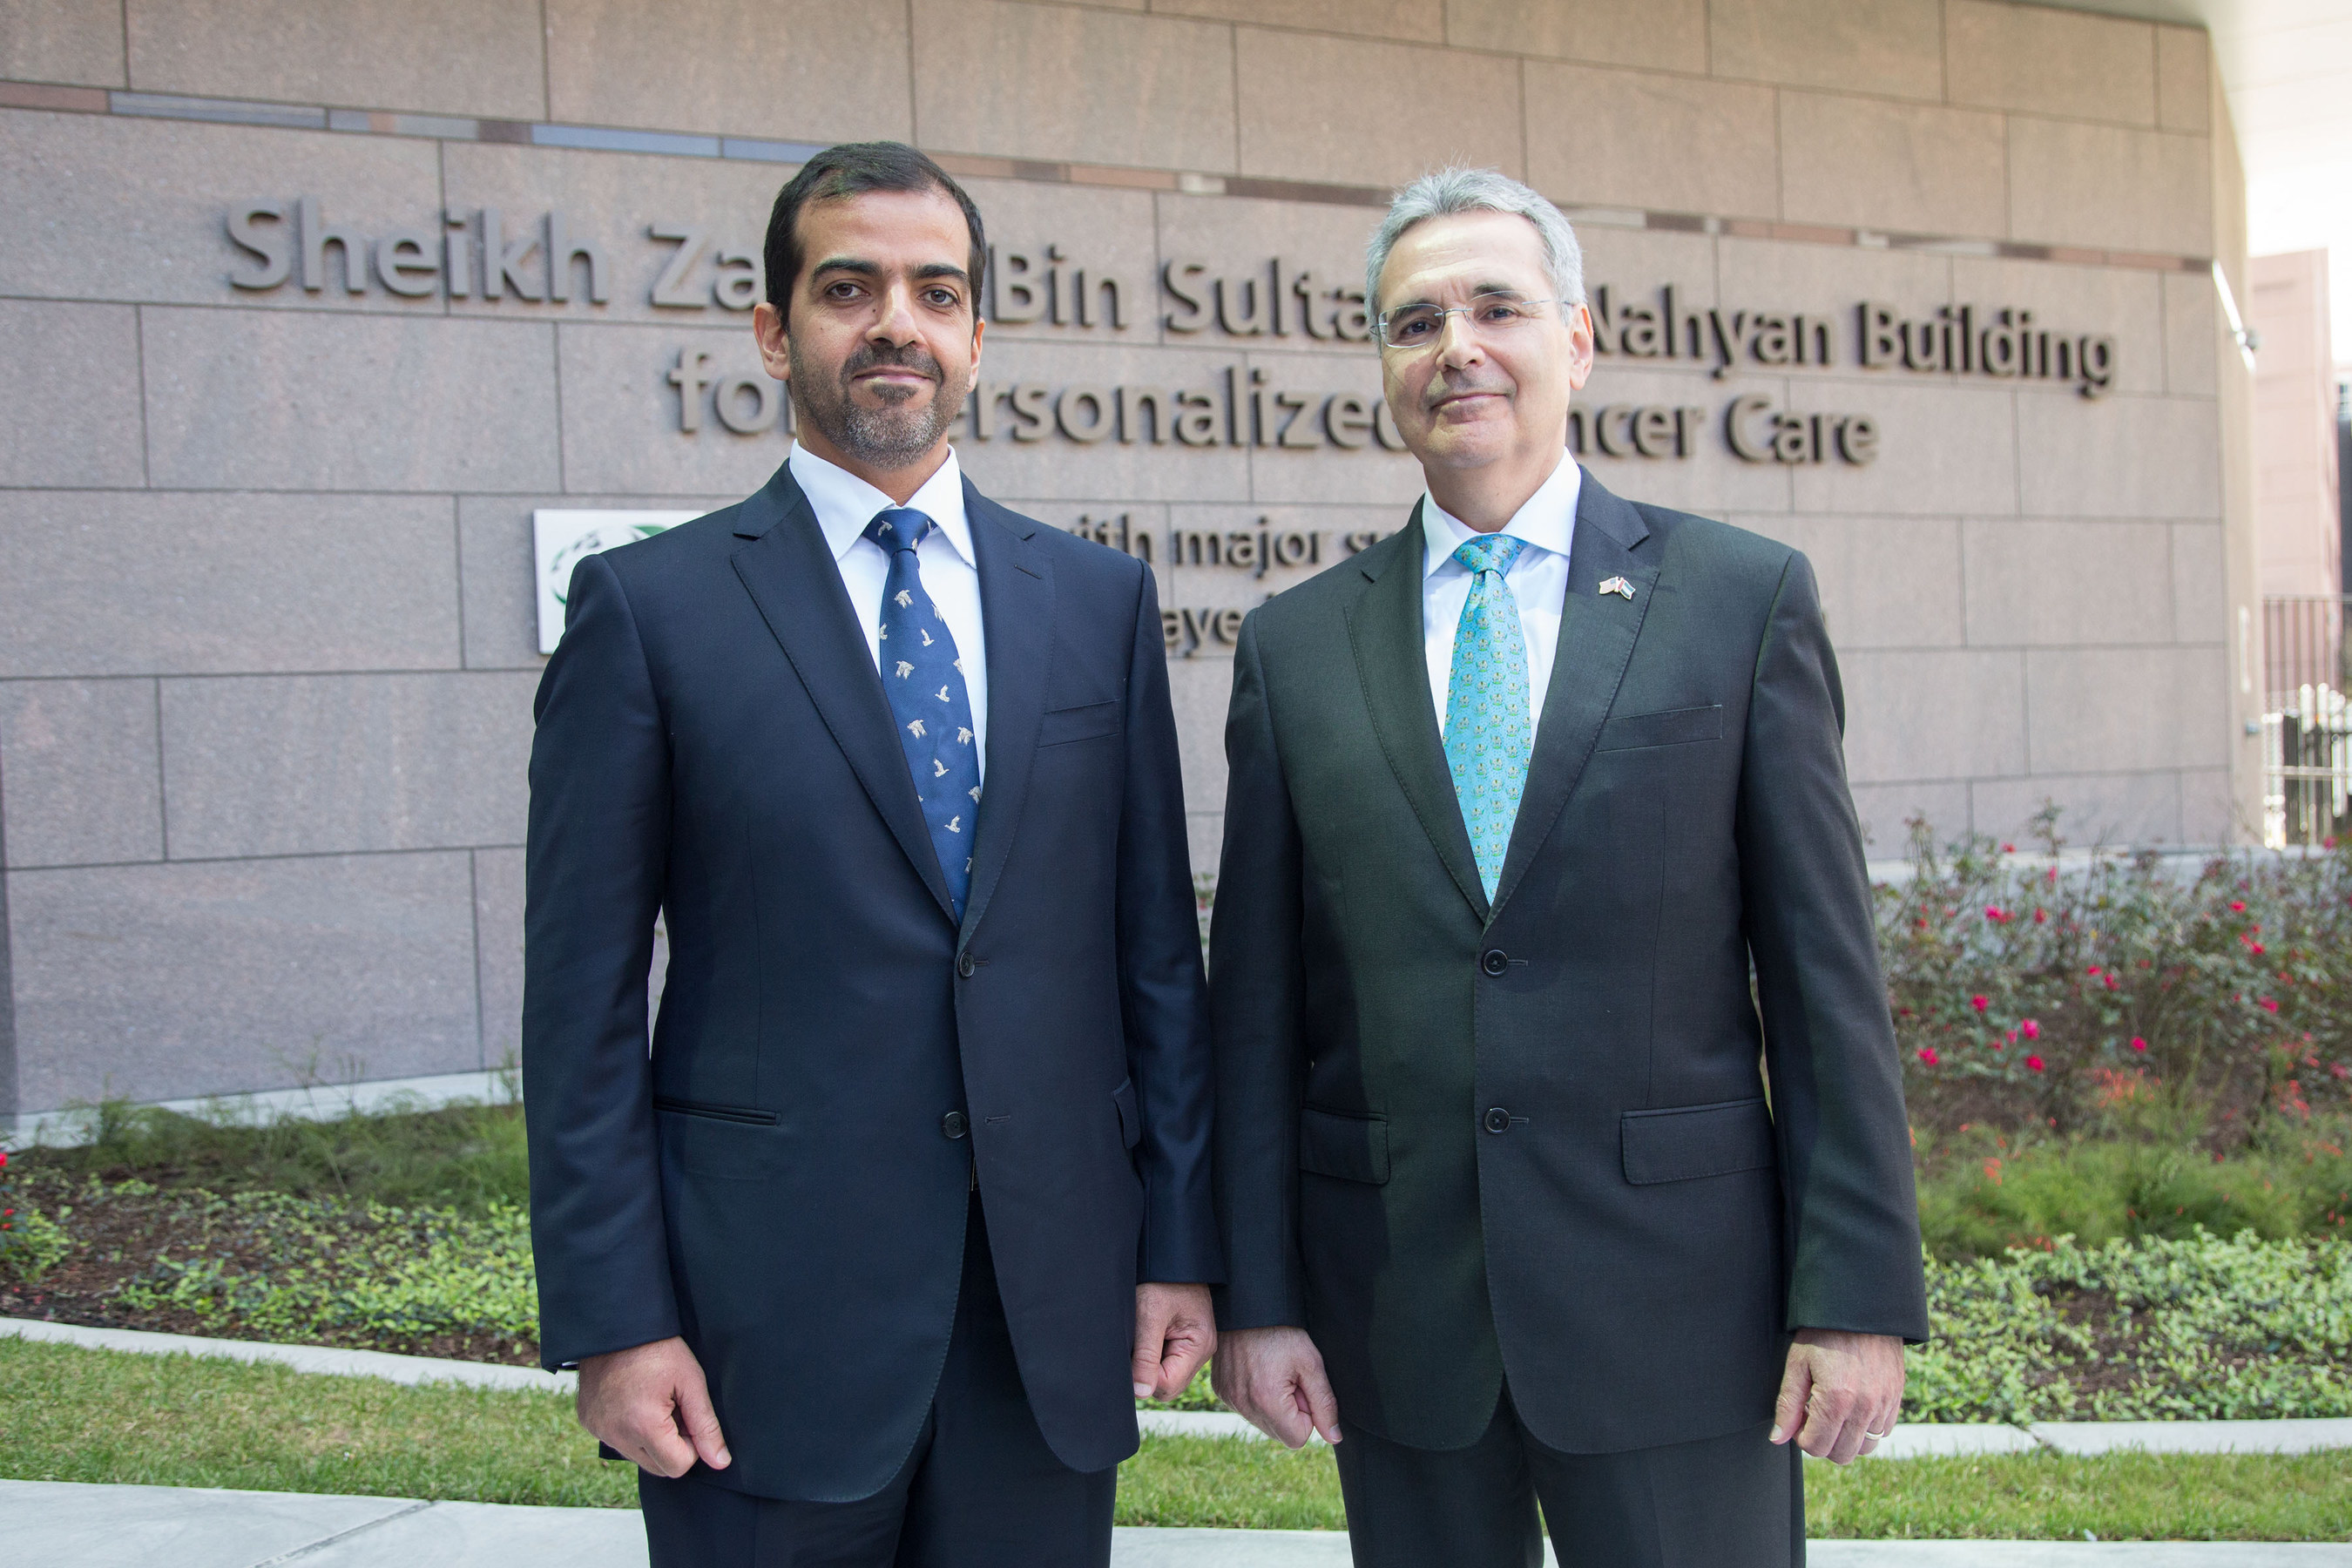 His Highness Sheikh Hamed Bin Zayed Al Nahyan, Chairman of the Crown Prince Court of Abu Dhabi, left, and Ronald A. DePinho, President, The Universty of Texas D Andreson Cancer Center, pose for a photo in front of the Sheikh Zayed Bin Sultan Al Nahyan Building for Personalized Cancer Care, after the center was dedicated Friday, April 8, 2016